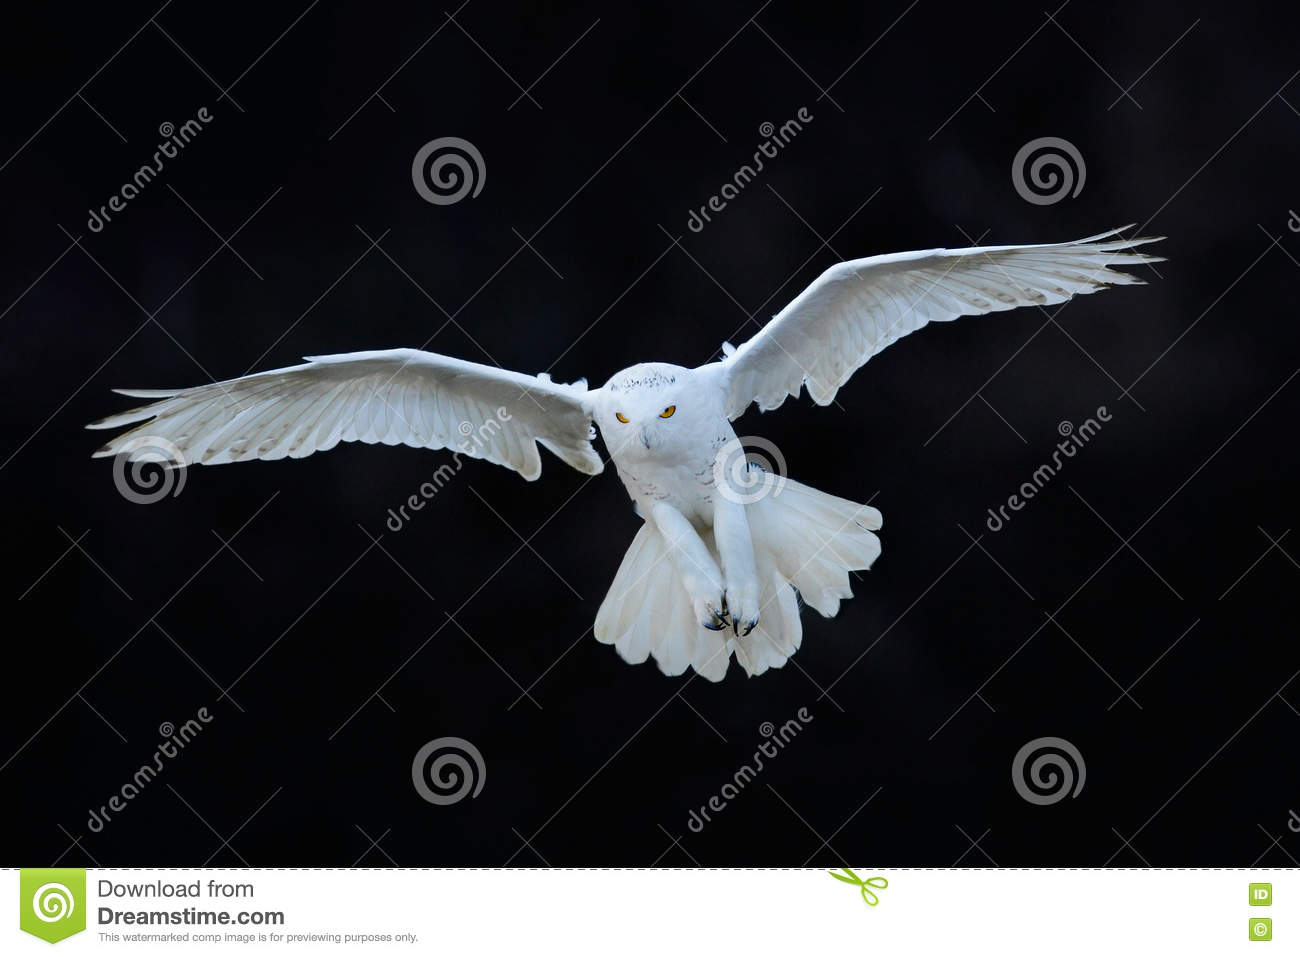 Snowy owl, Nyctea scandiaca, white rare bird flying in the dark forest, winter action scene with open wings, Canada